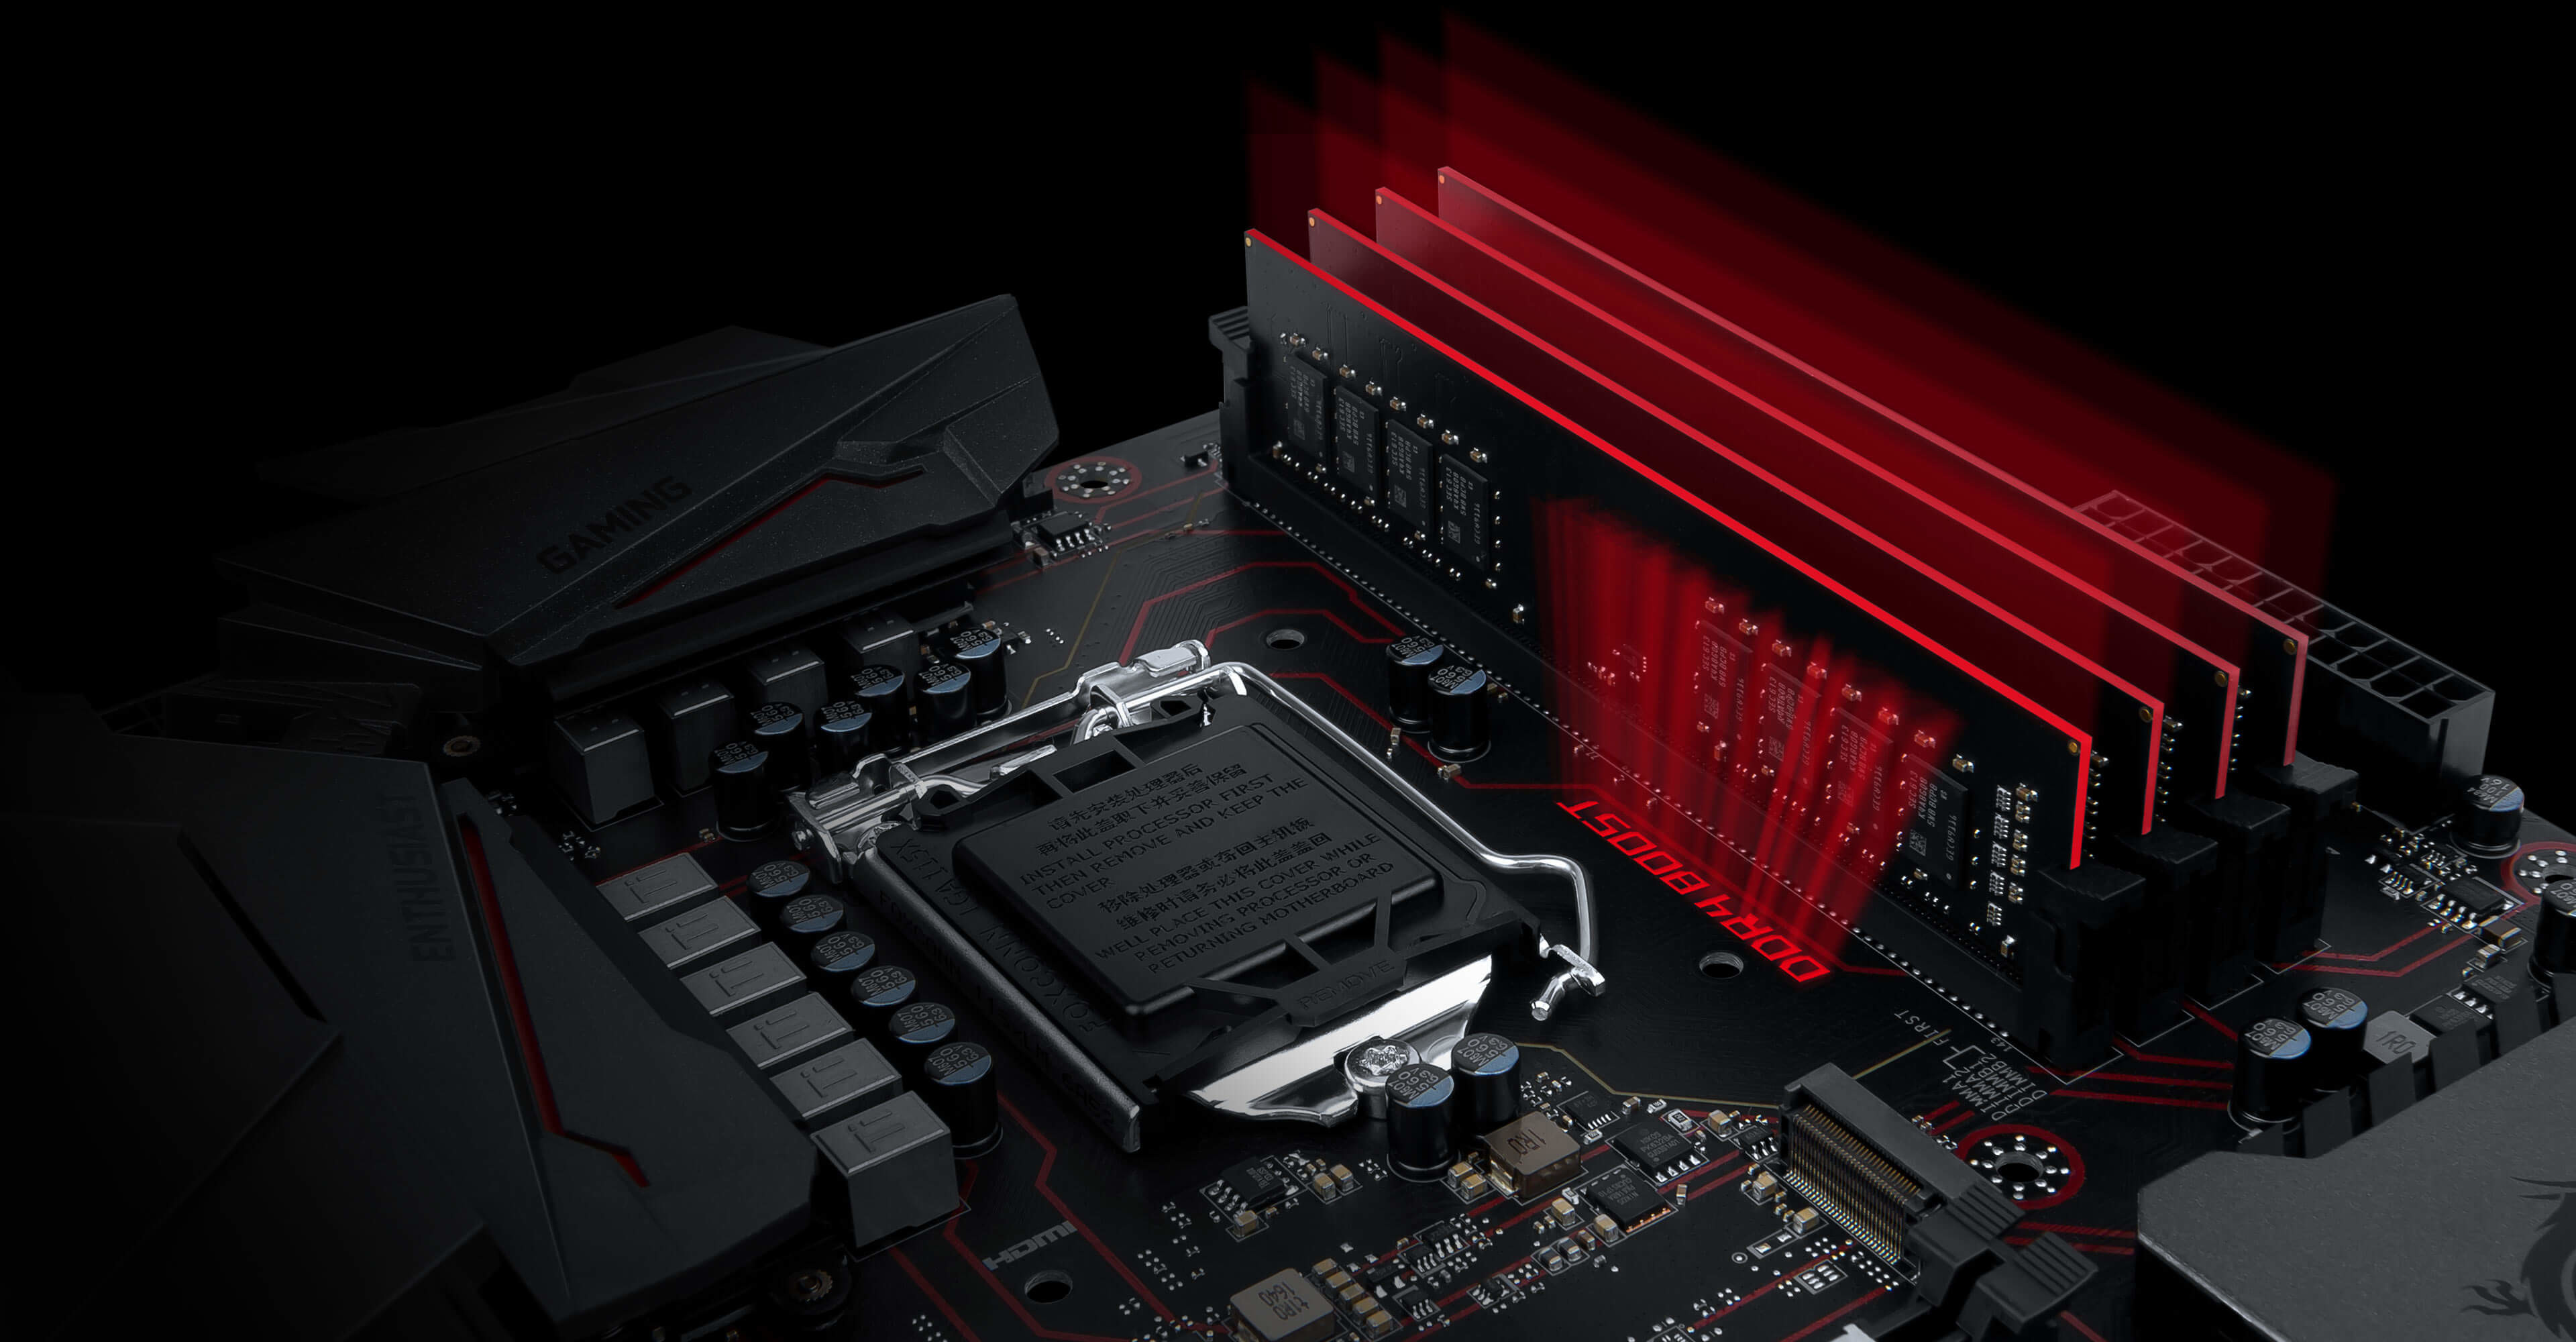 3840x2000 MSI motherboards are crammed with features to fuel your gaming rig's memory  with more speed, higher overclockability and increased stability.